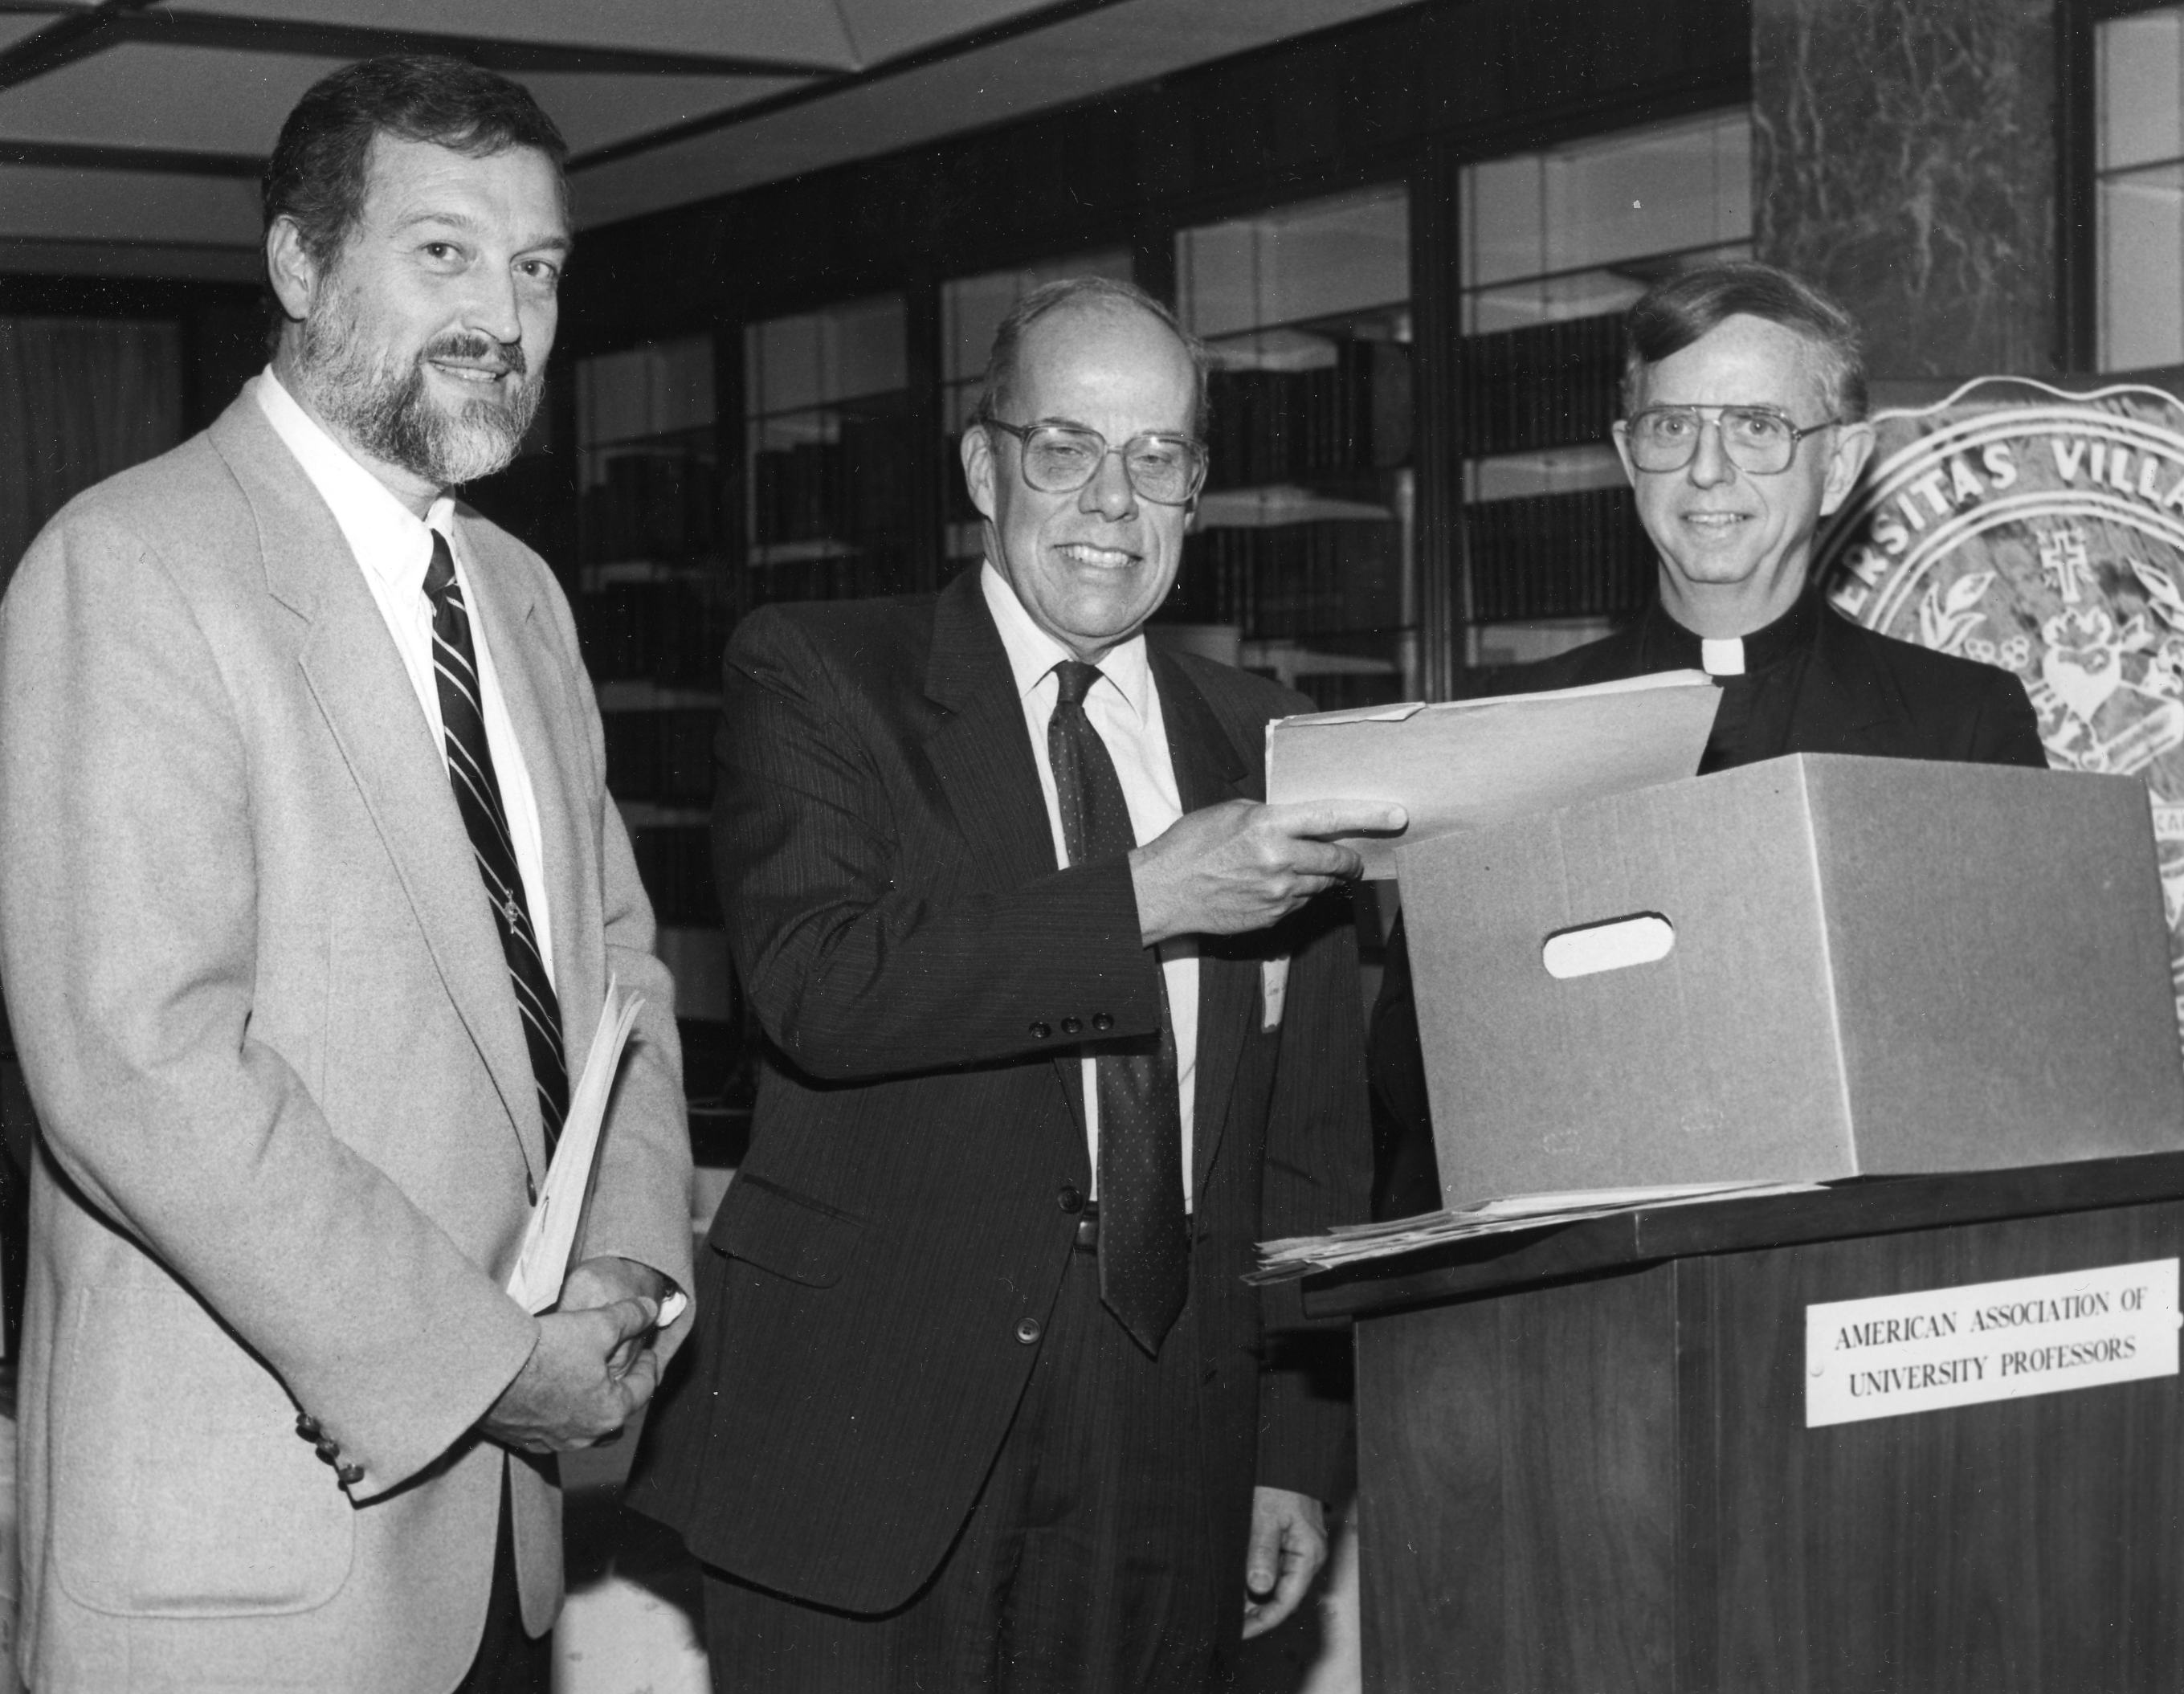 Donation of AAUP archives